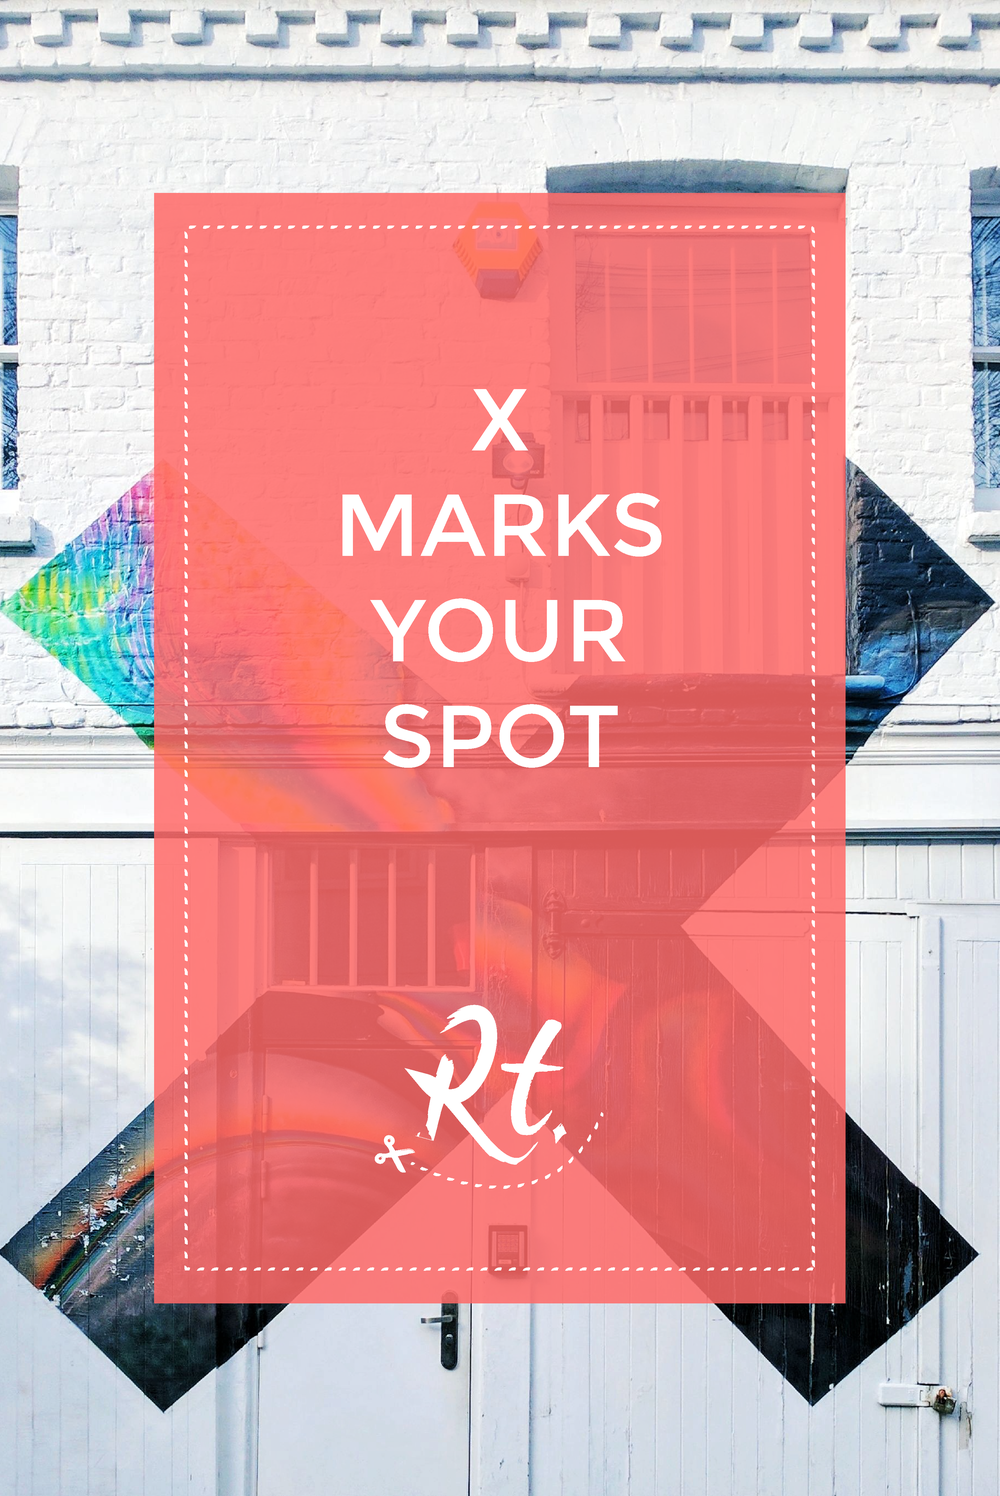 X Marks Your Spot by Rosh Thanki, The XX Coexist album art, at XL Recordings in London